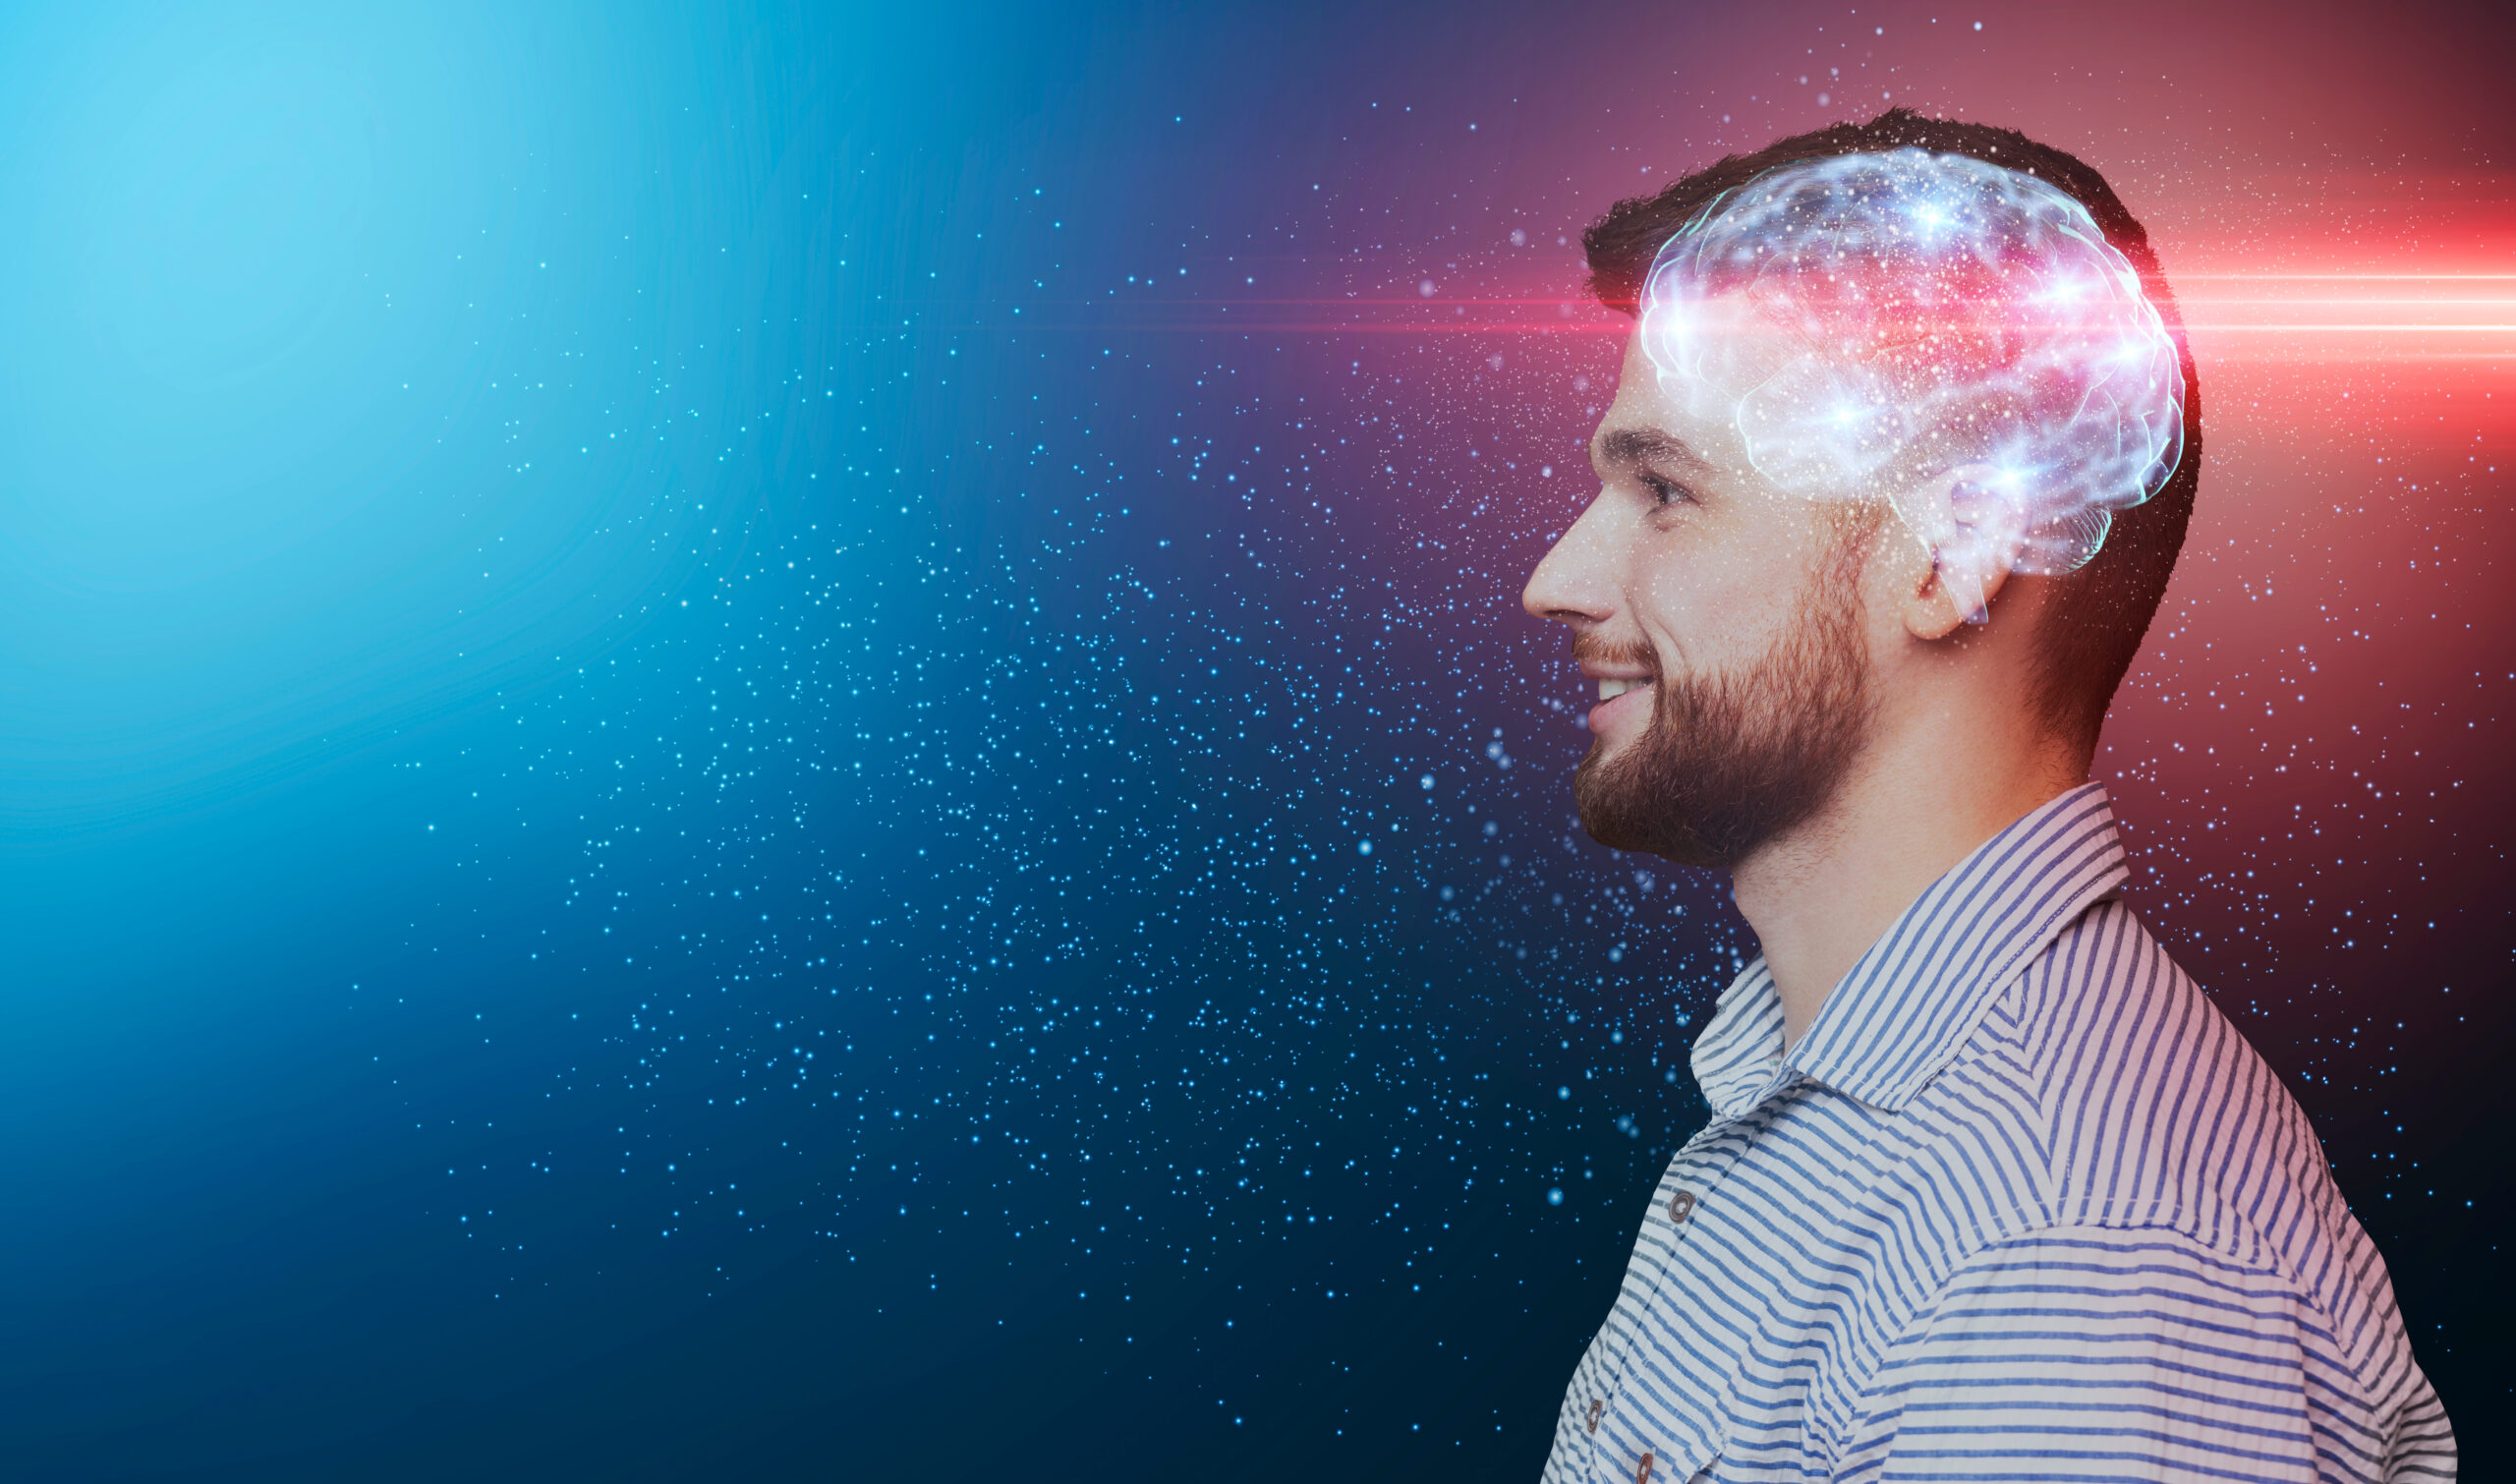 Check Out The Big Brain on Brett: How a Second Language Can Boost the Brain